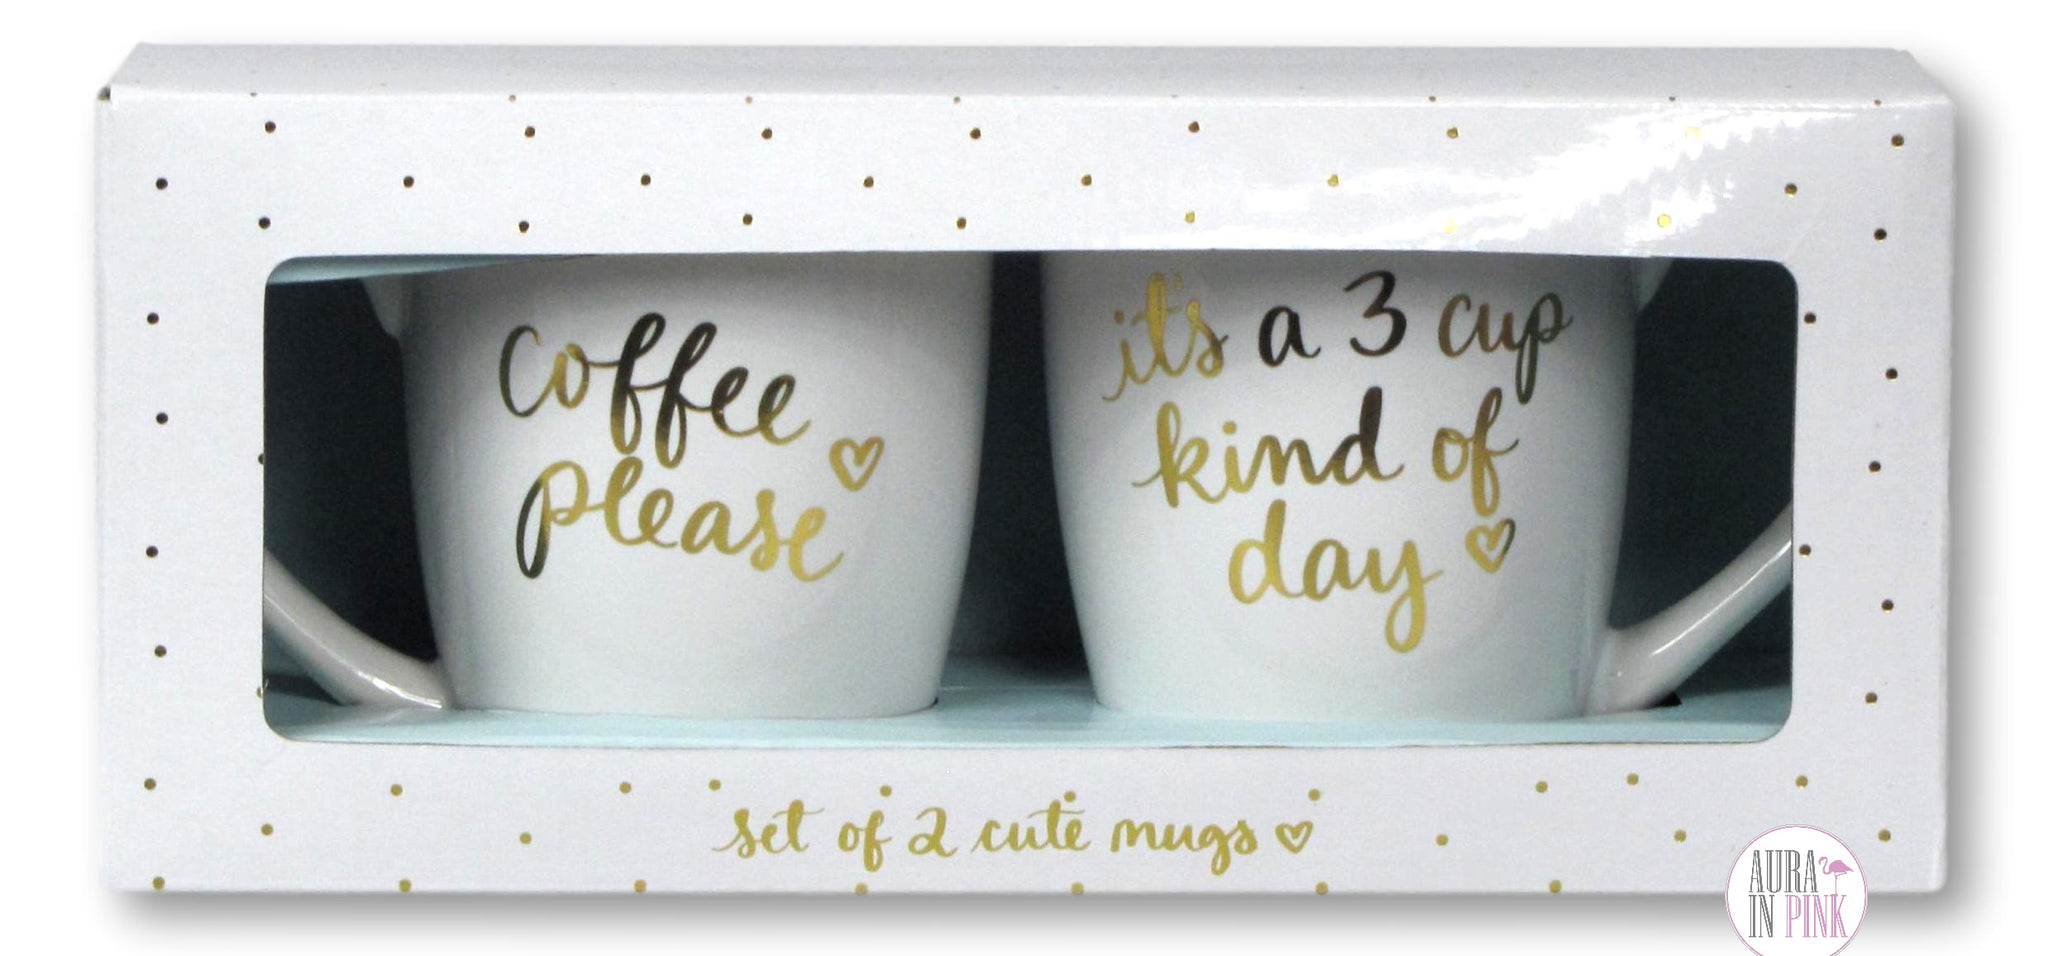 Eccolo Dayna Lee Collection Large Inspirational Coffee Mug Set Coffe Aura In Pink